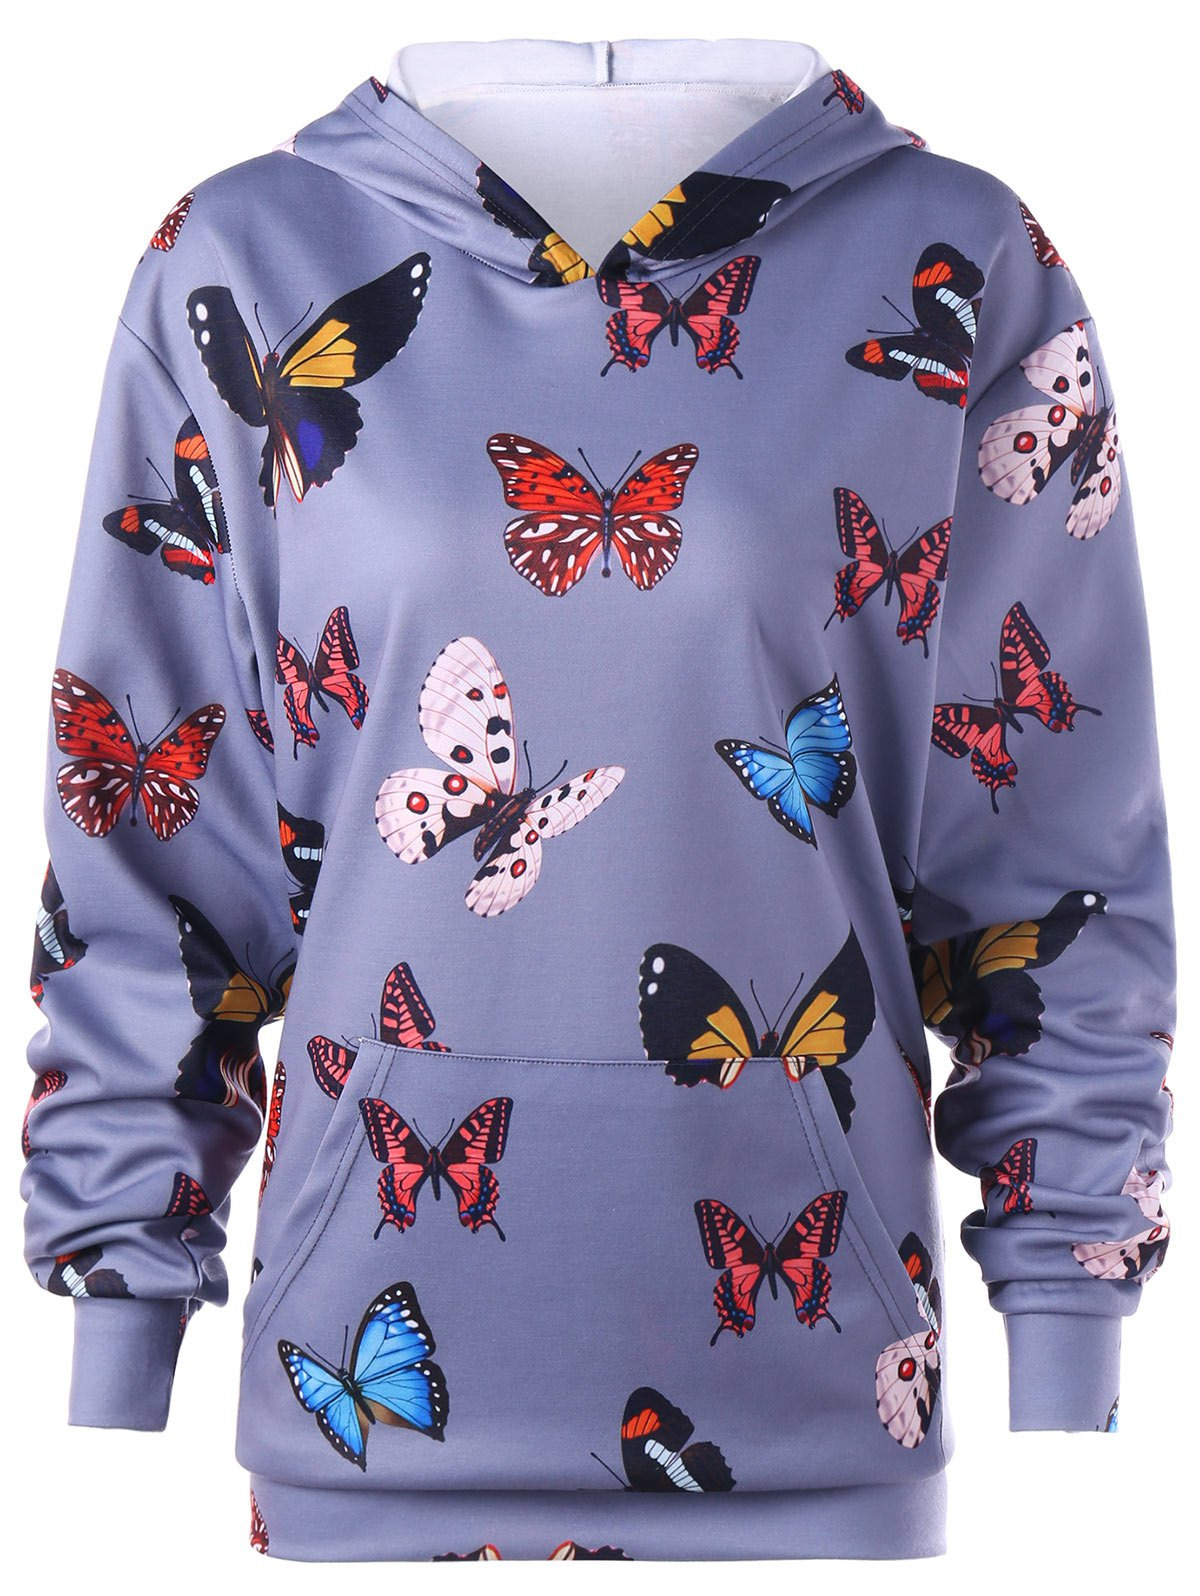 Butterfly Print Kangaroo Pocket Hoodie - BLUE GRAY XL